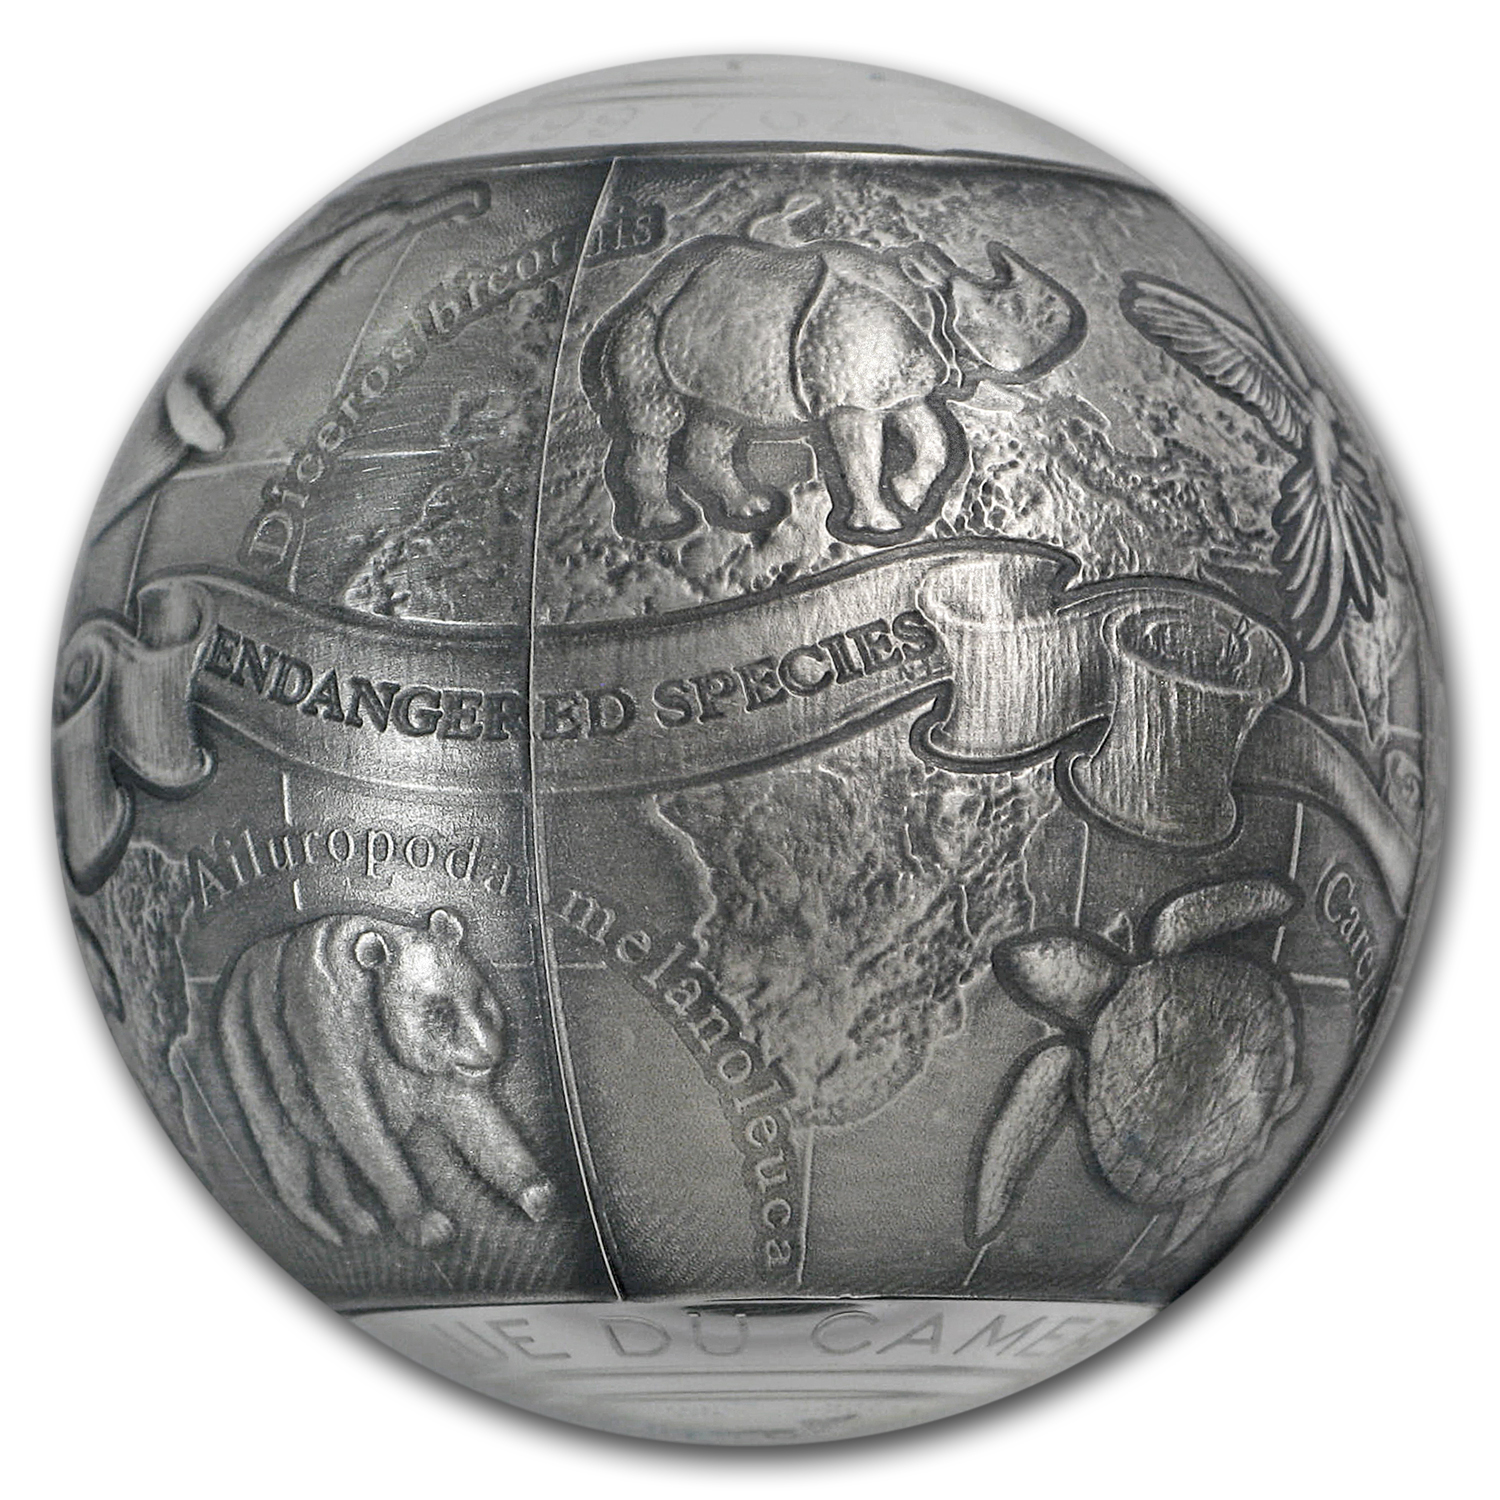 2017 Cameroon 7 oz Silver SOS Endangered Animal Species Spherical